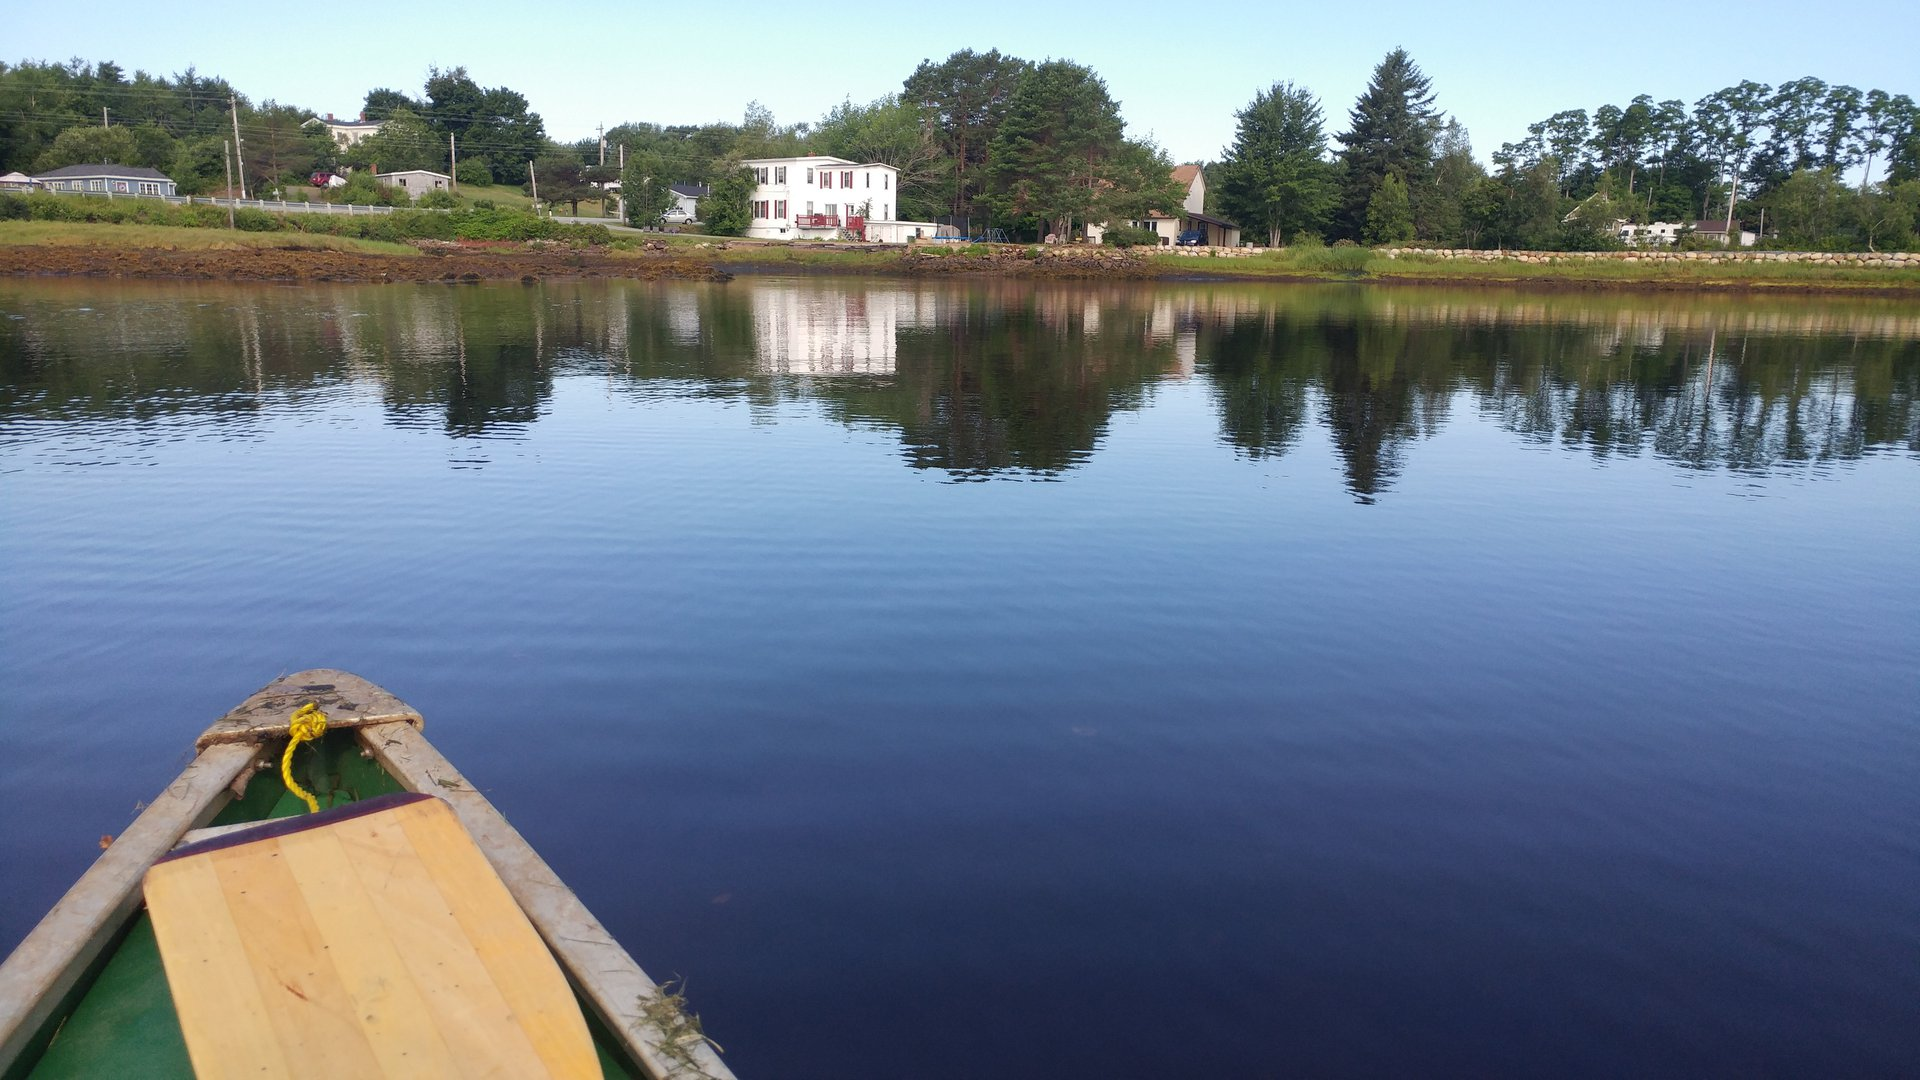 House for rent at 1751 NS-331, Pleasantville, NS. This is the water view with water view and dock.